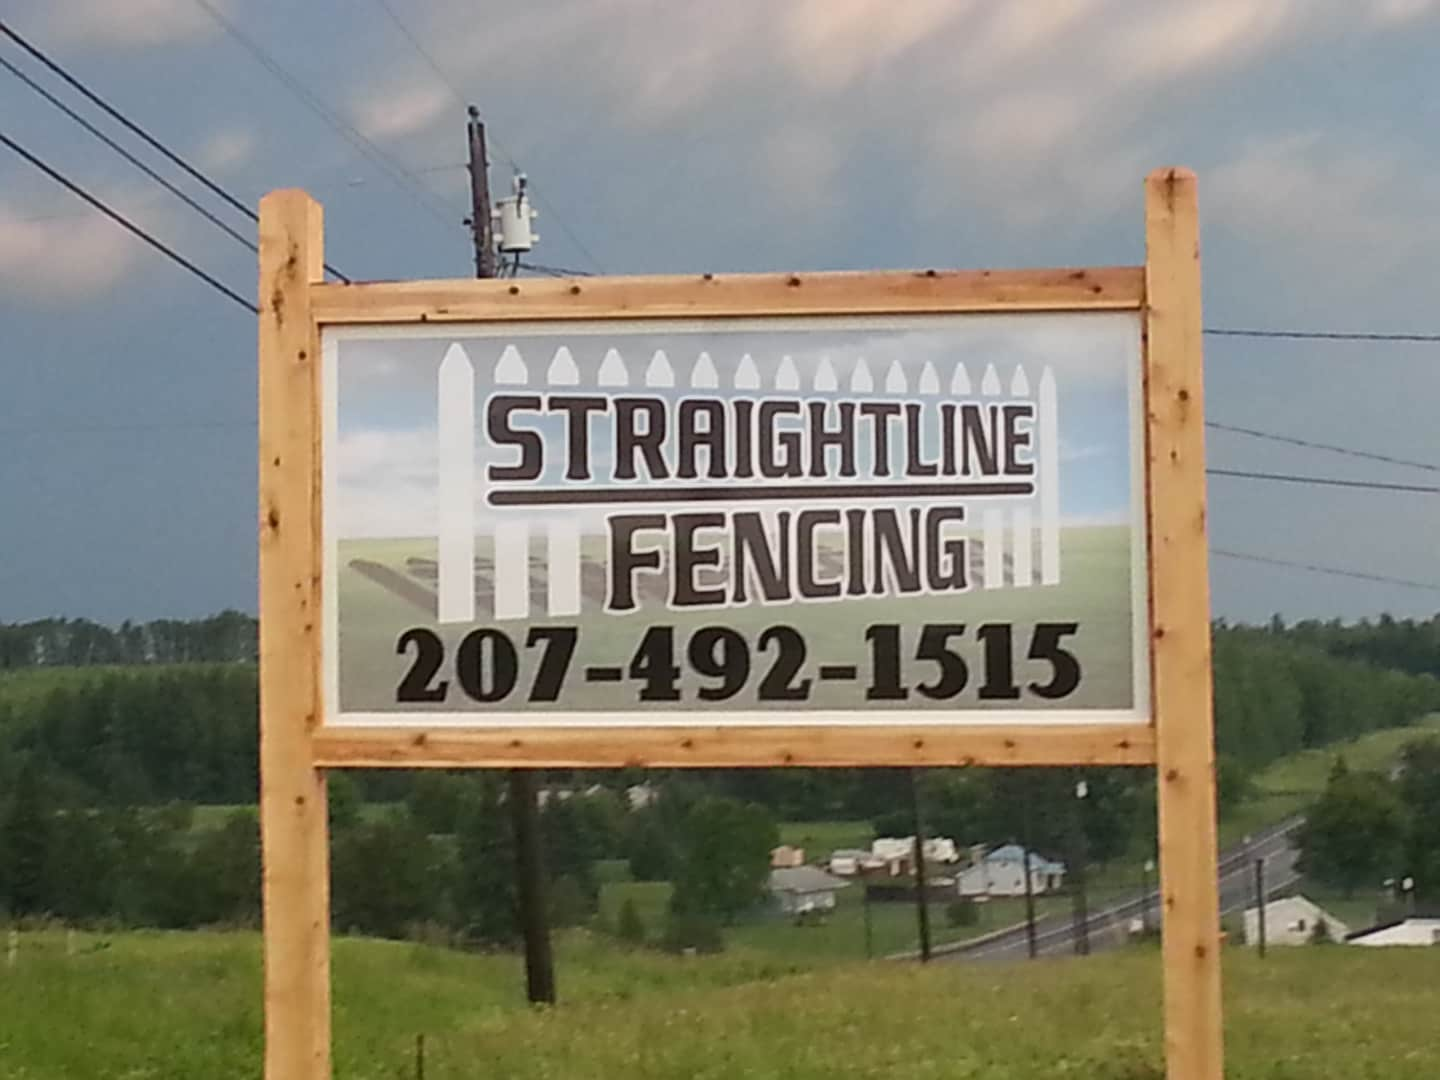 Straightline Fencing